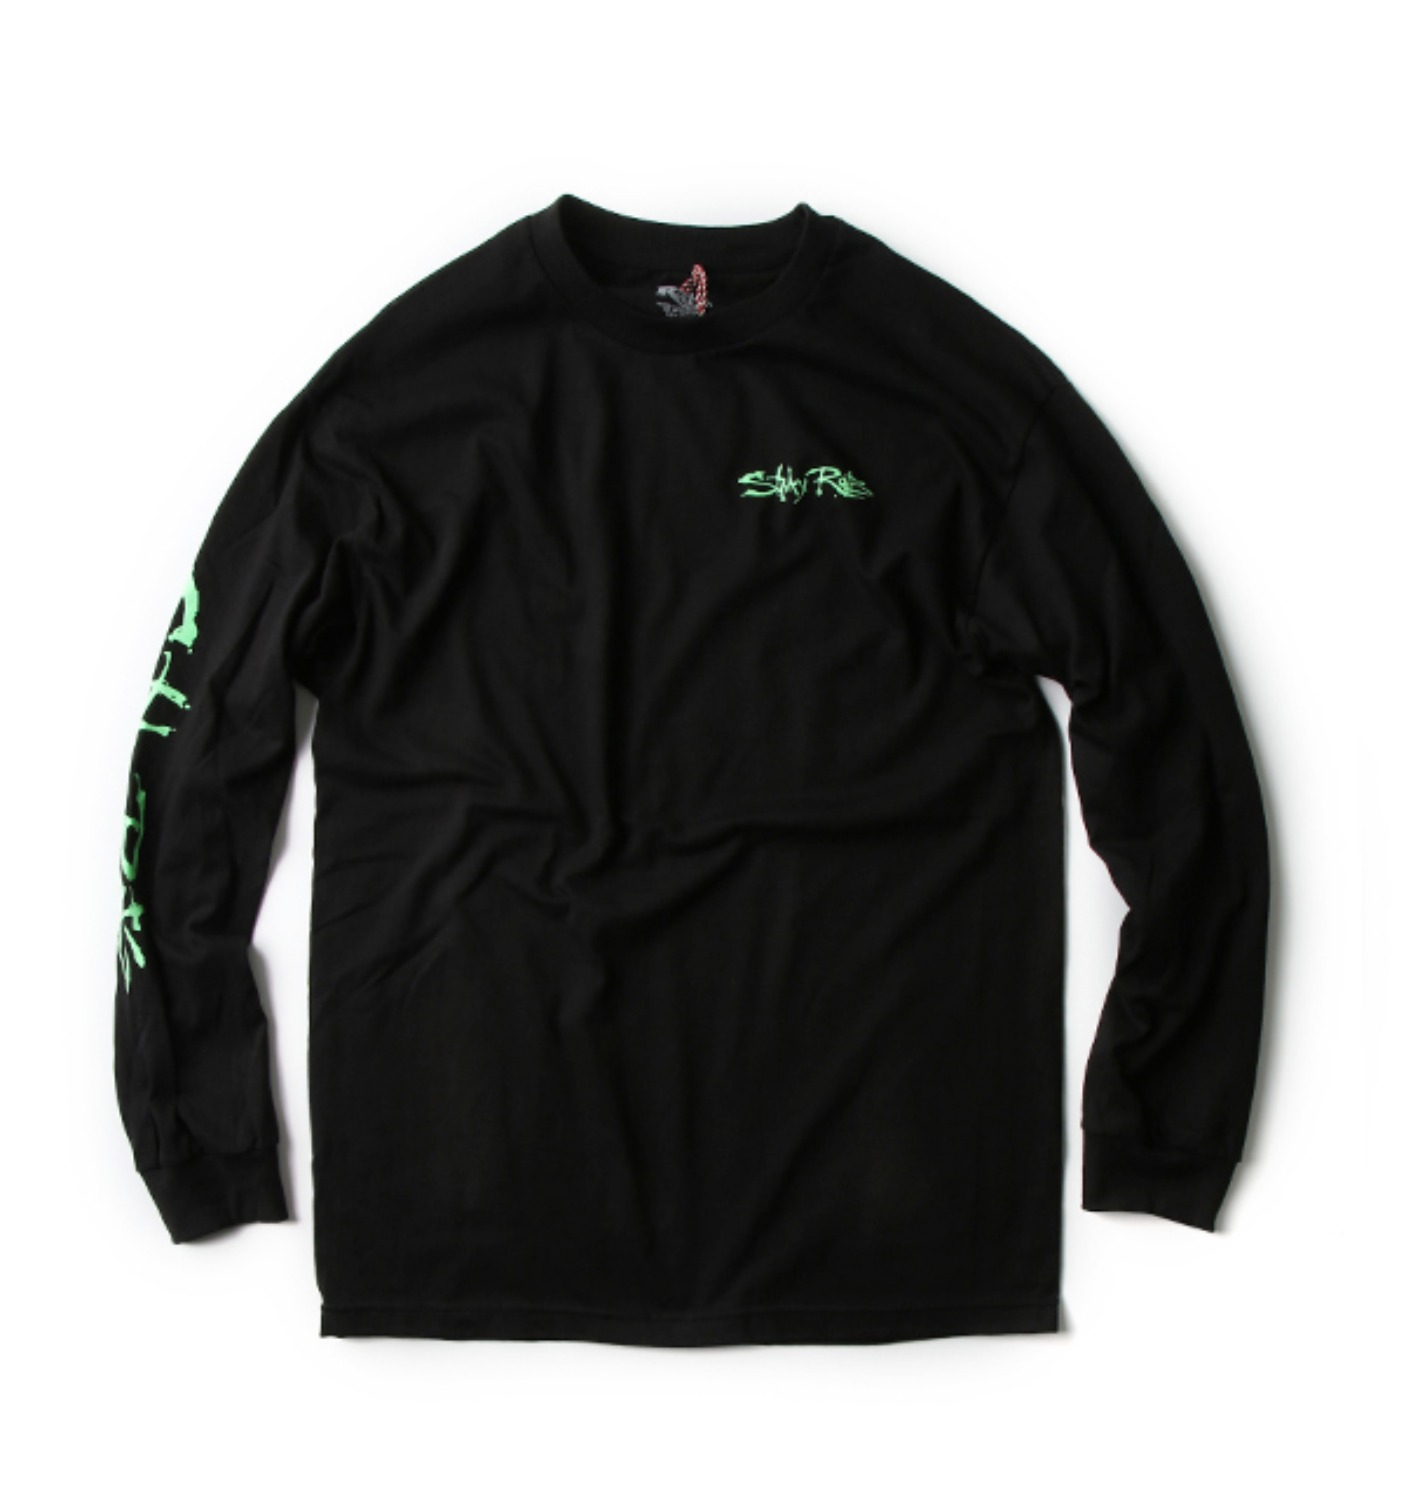 FISHERMAN LONGSLEEVE BLACK